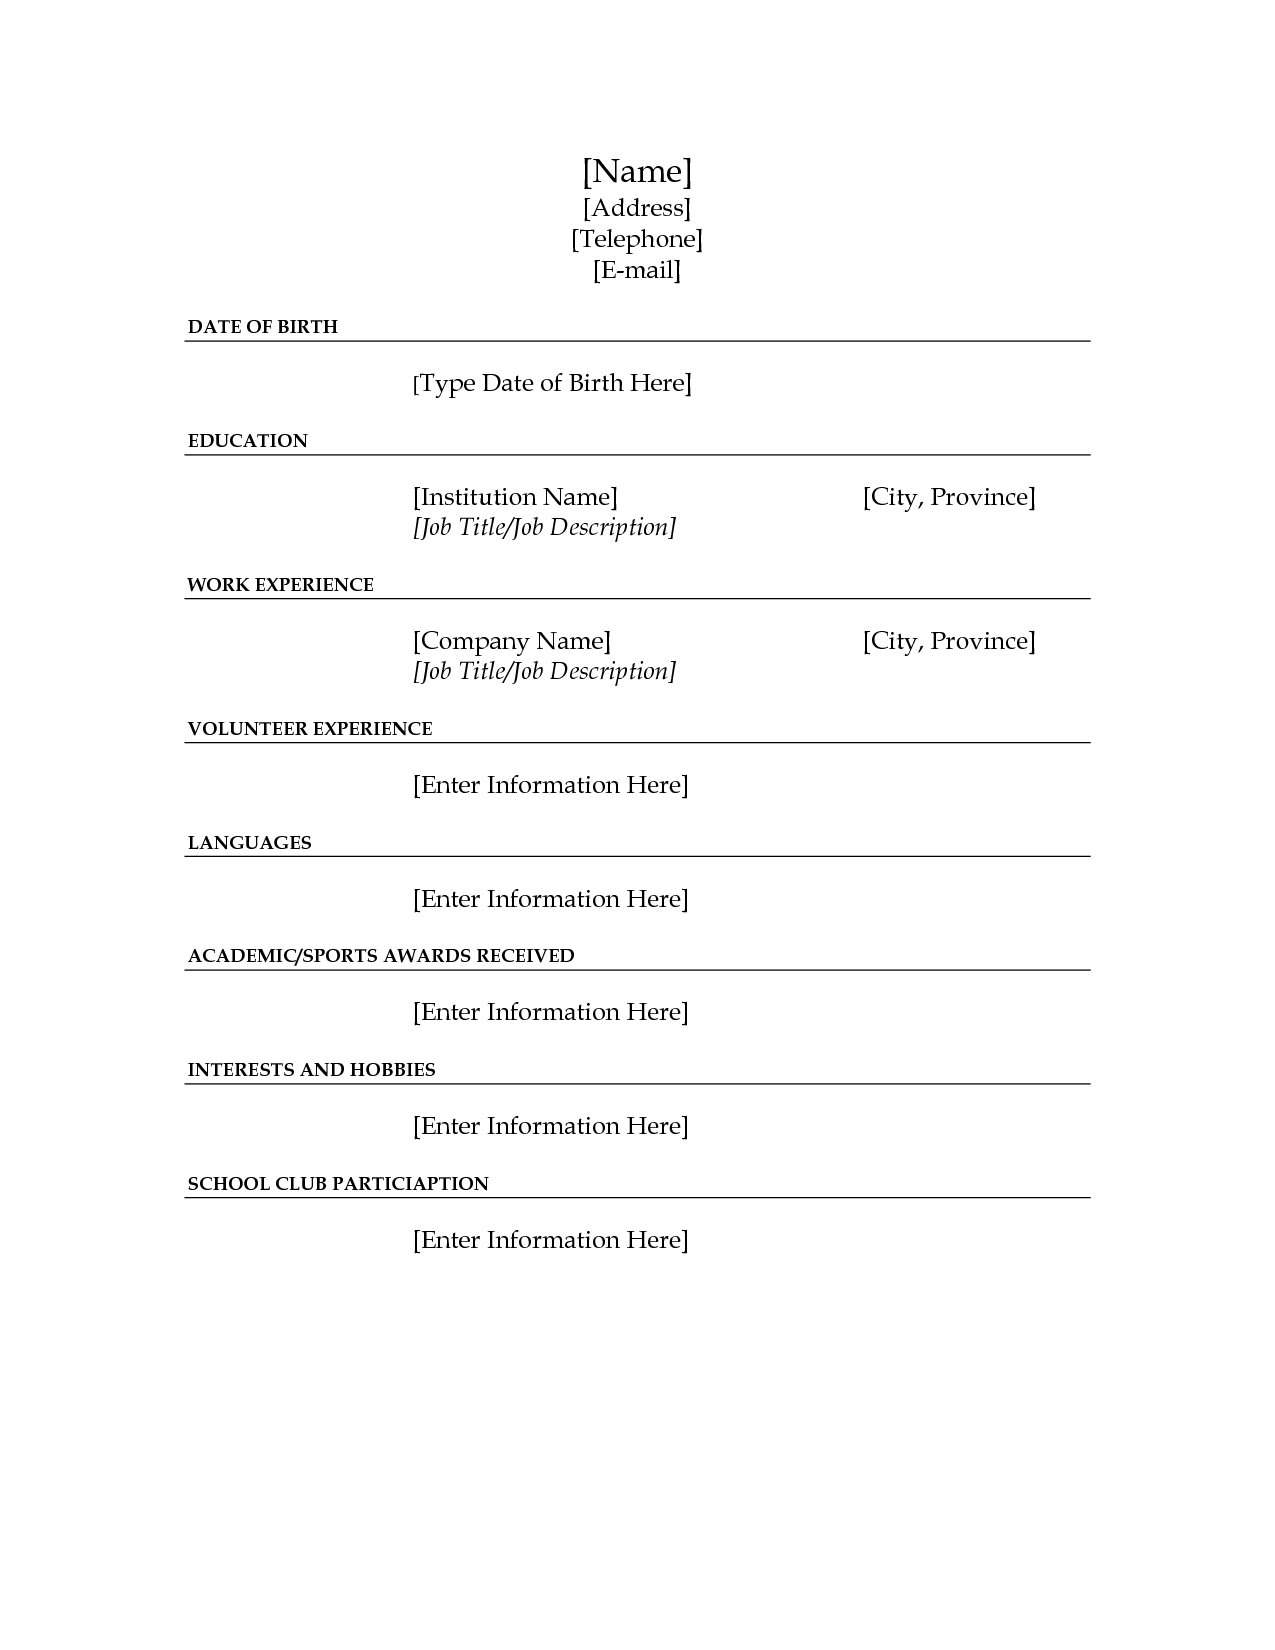 Job Resume Fill Blank scope of work template EYC Lifeskills